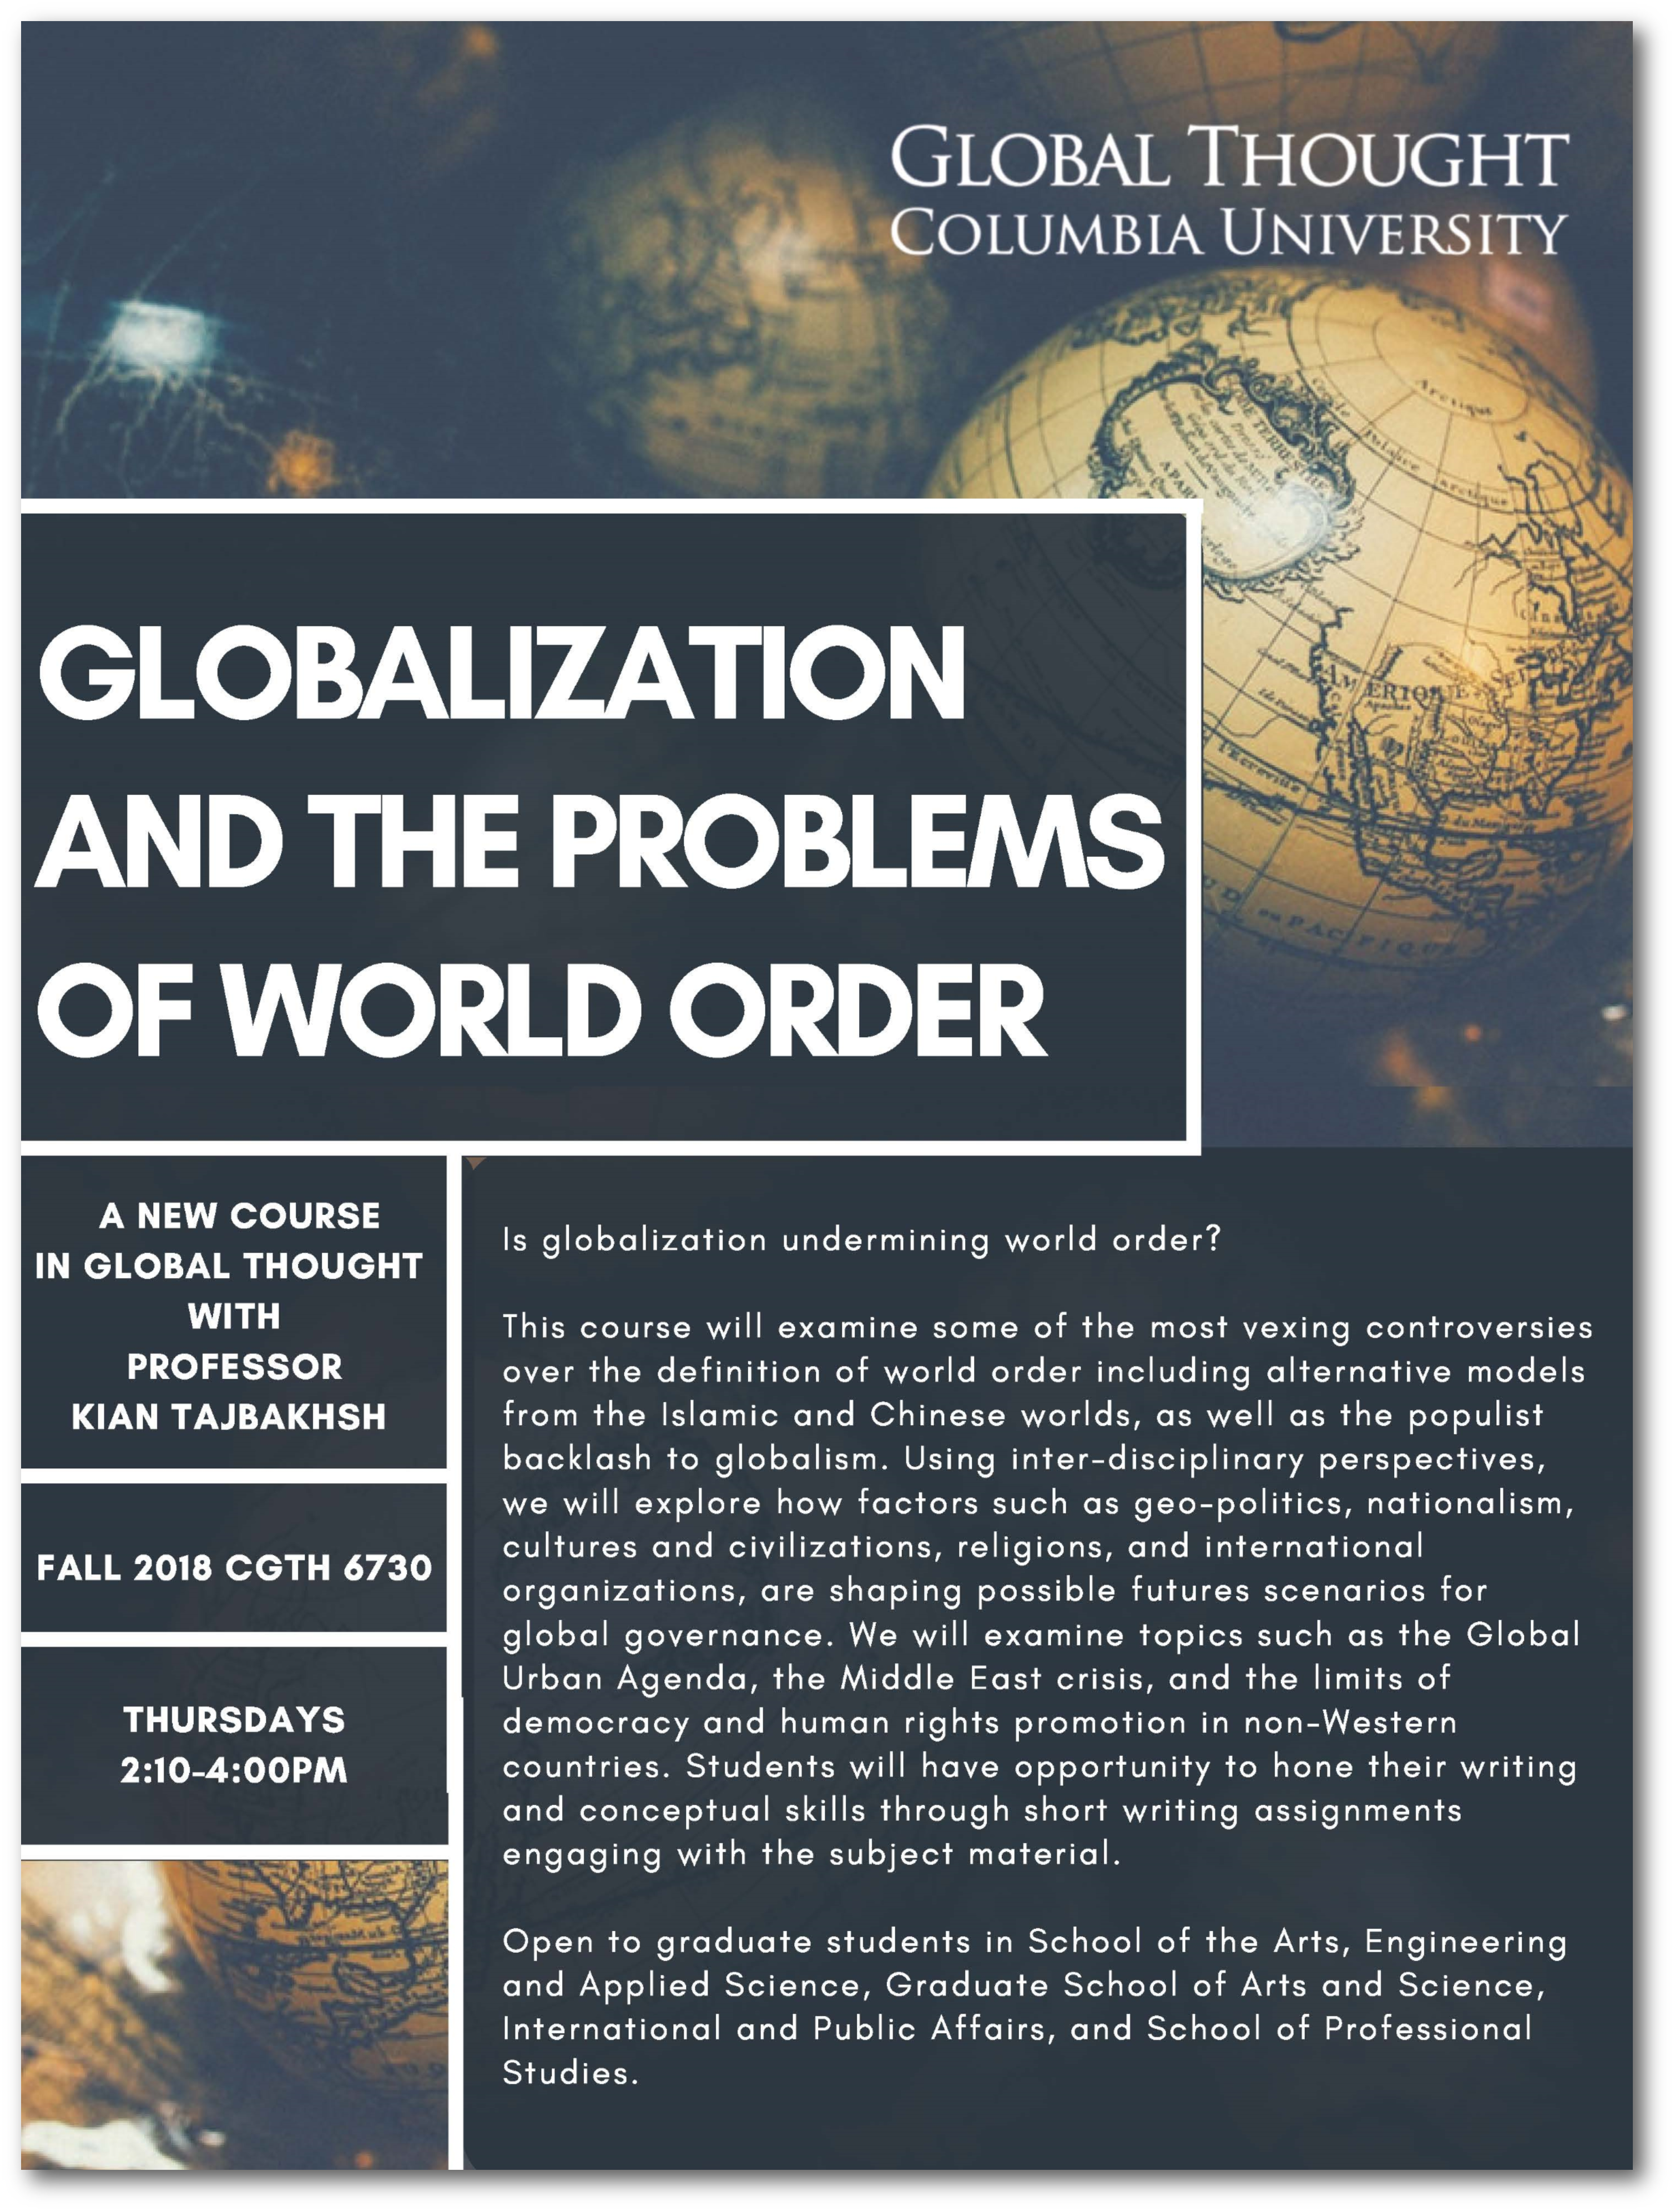 globalization definition for students